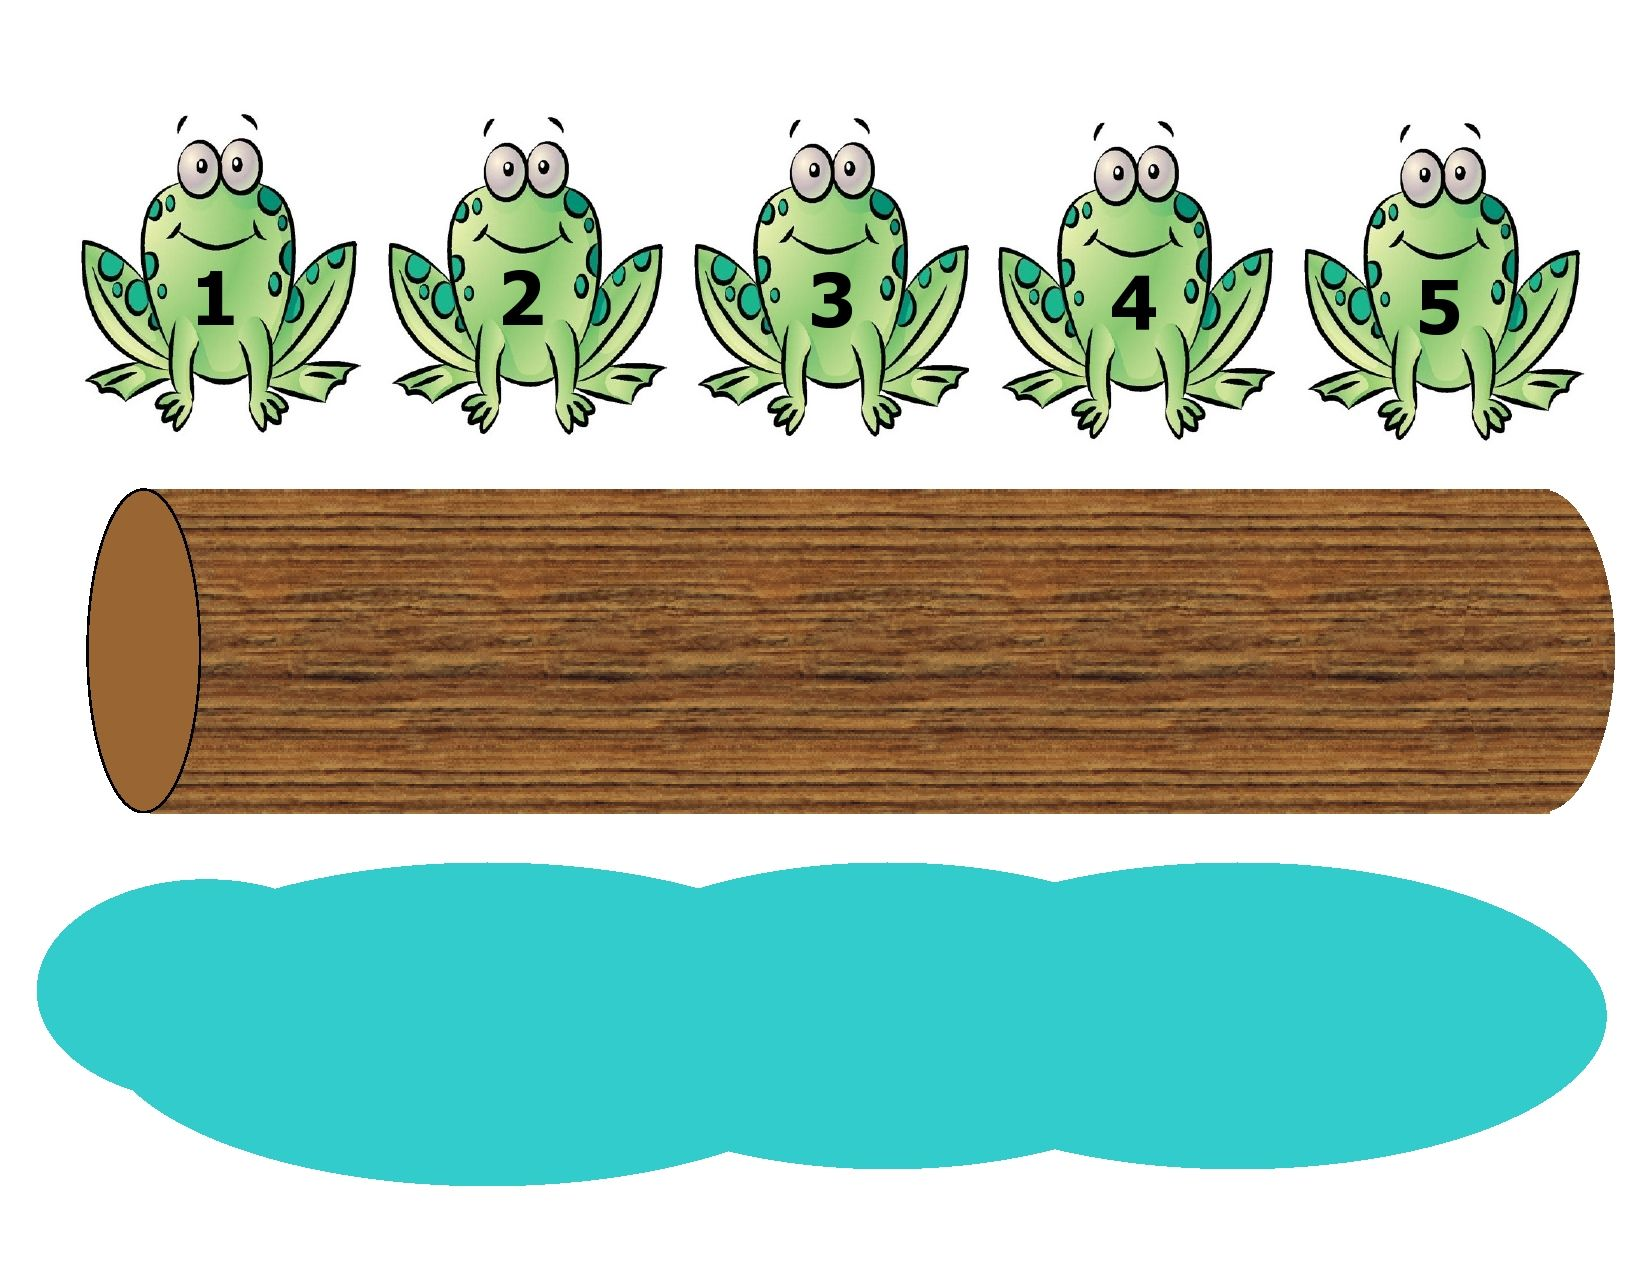 Five Green And Speckled Frogs Fingerplay Is A Fun Way To